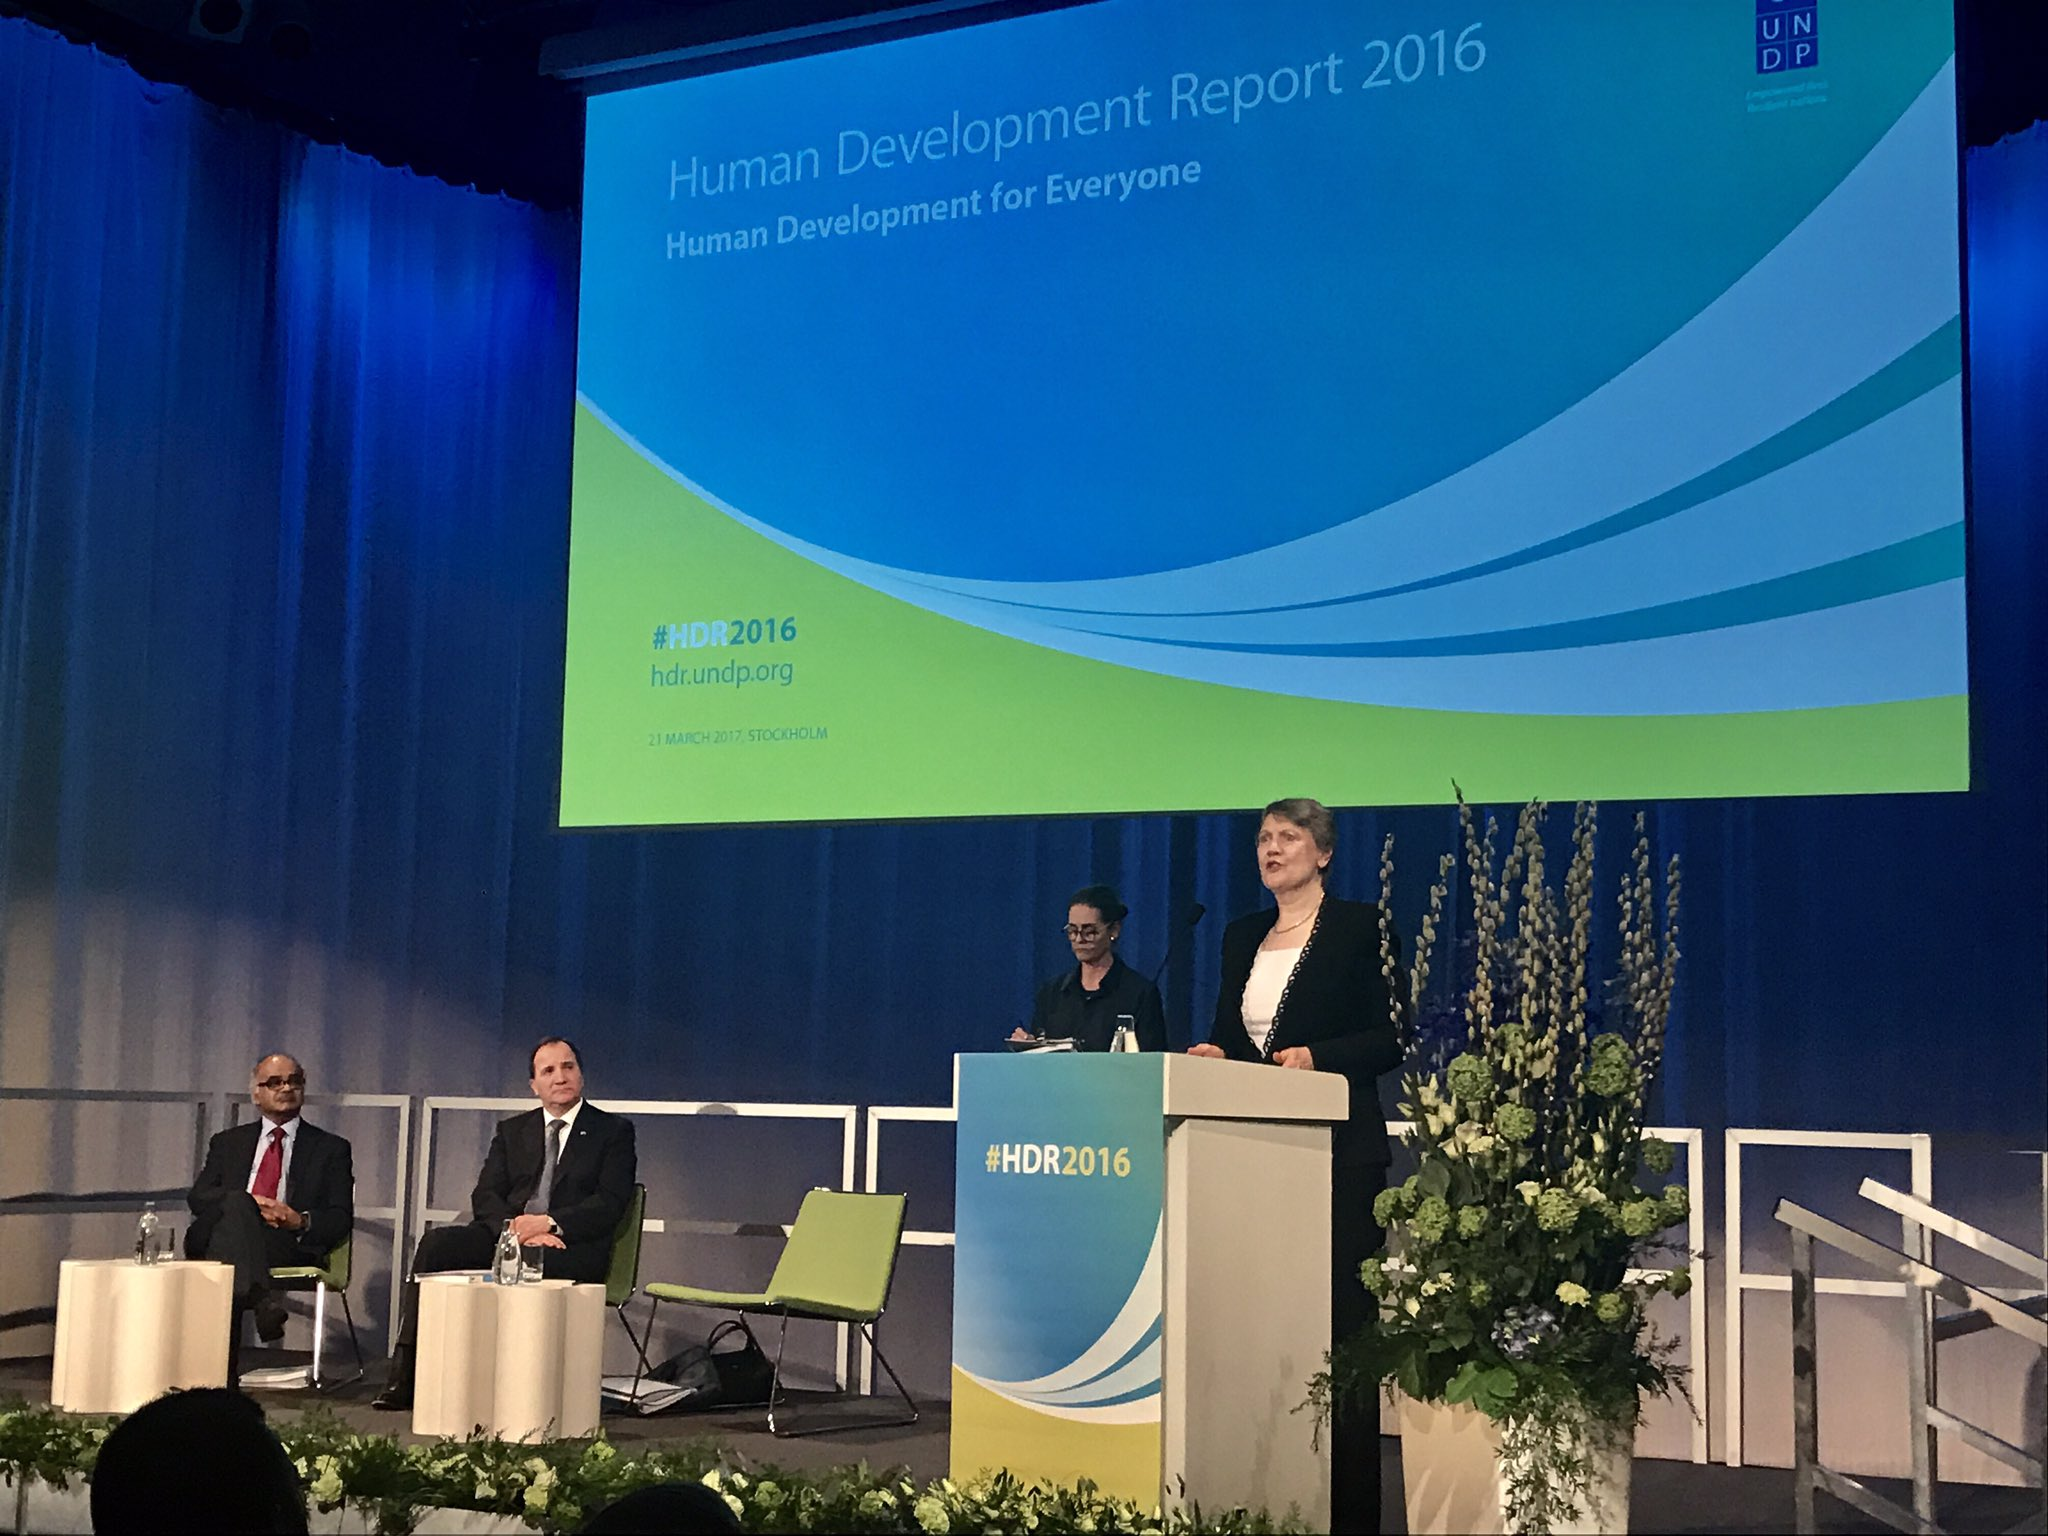 'Human development for all is not a dream - it is attainable' @HelenClarkUNDP speaks at #HDR2016 launch. https://t.co/y2RSgbNz5b